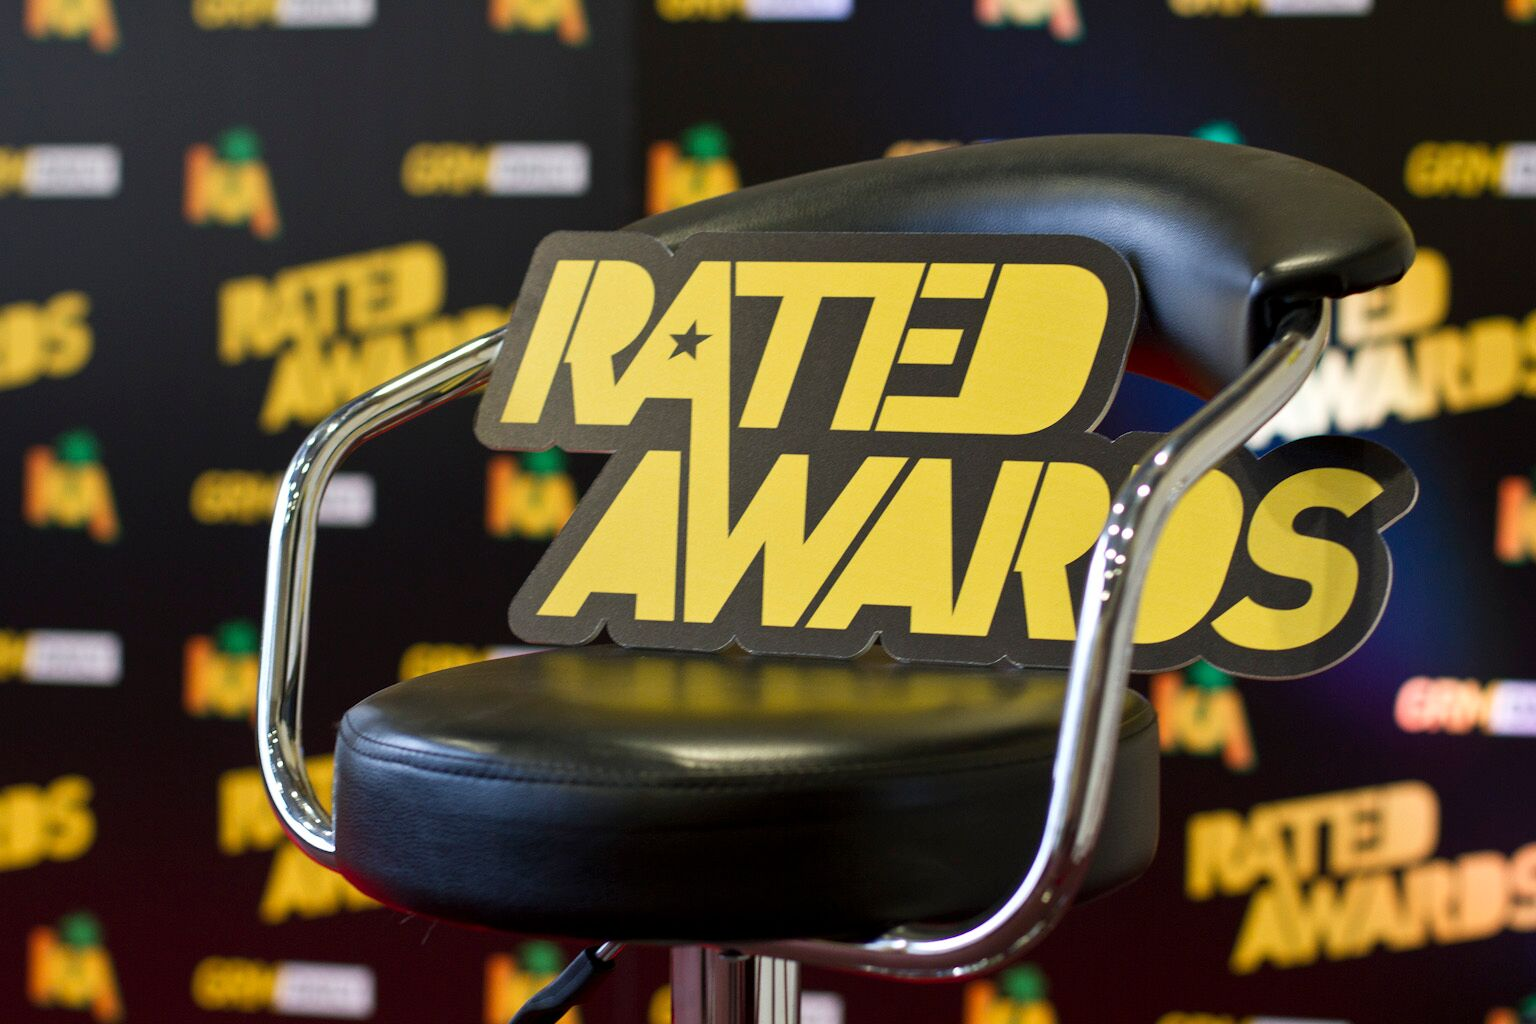 rated awards